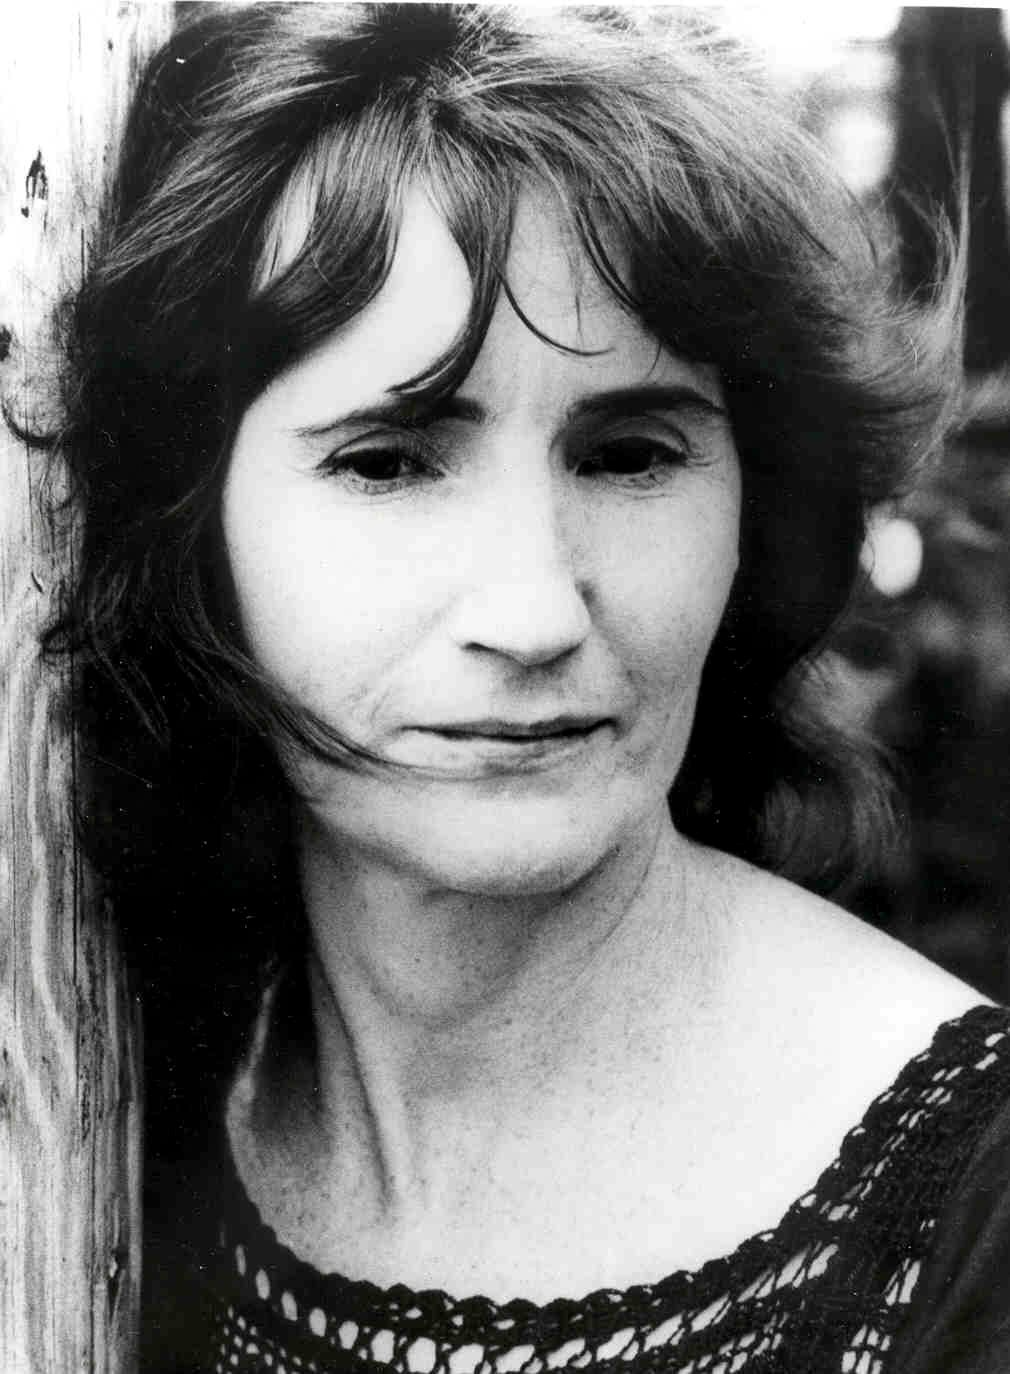 Caption: Hazel Dickens (1935-2011), West Virginia-born singer, activist and songwriter, is inducted in June into the Blue Ridge Music Hall of Fame in Wilkesboro, NC.  The Hall of Fame is getting new, expanded space for exhibits on its inductees this year.  , Credit: UNC Southern Folklife Collection, Free Artist License